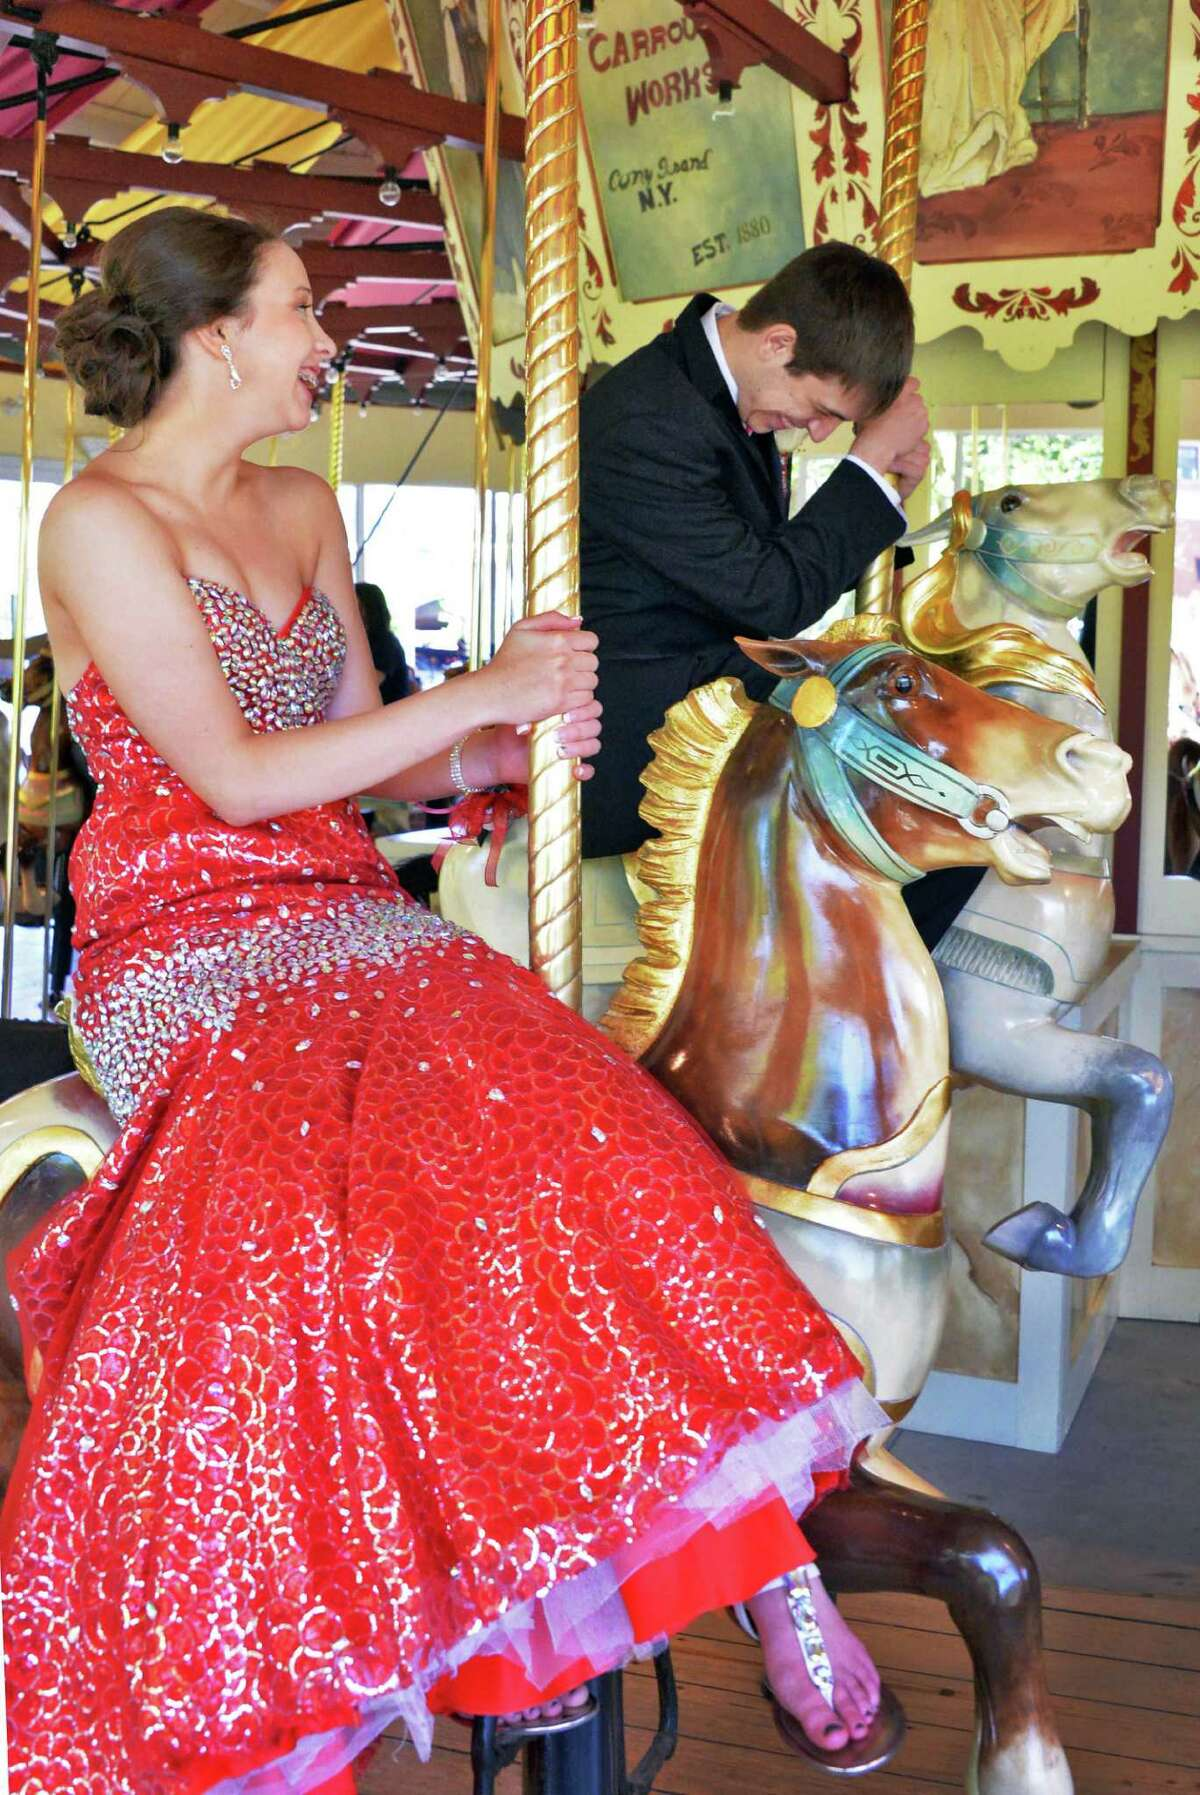 Dressed for their prom, South Glens Falls students Liz Raffile, 16, left, and Travis Rowe, 16, ride on the Congress Park Carousel as it opens for the season in Saratoga Springs, NY Saturday, May 4, 2013. (John Carl D'Annibale / Times Union)